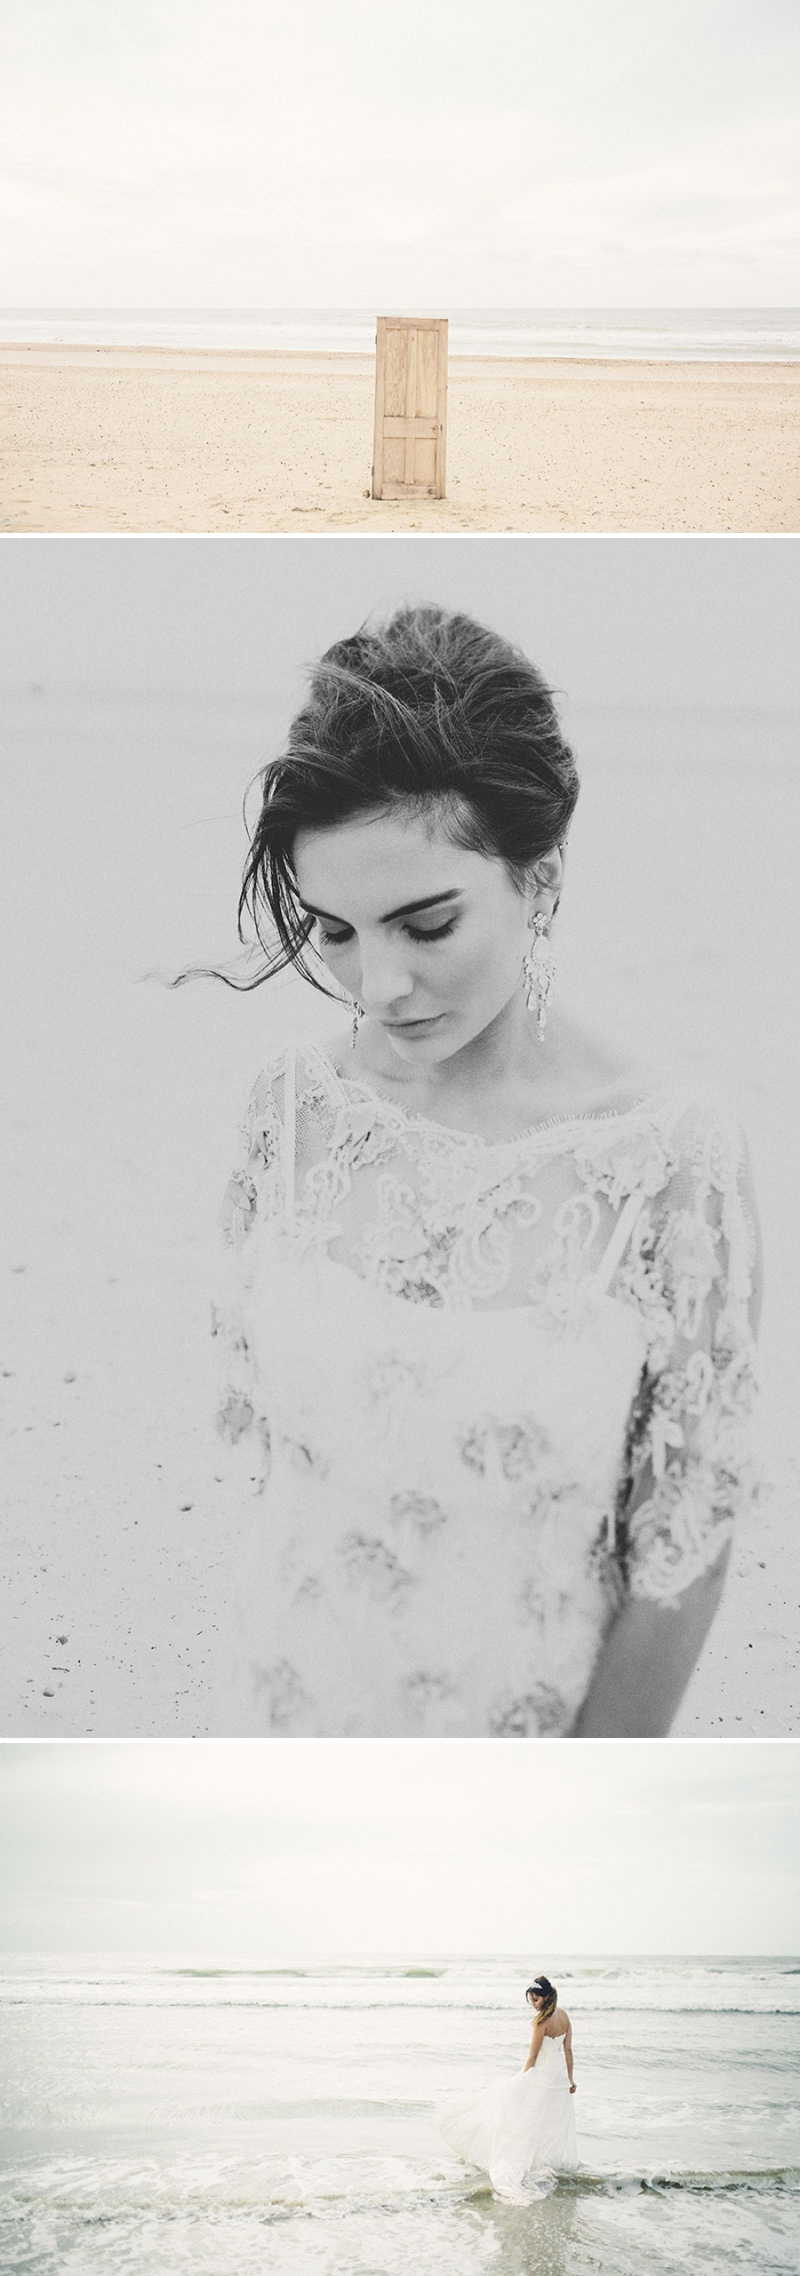 Mermaid wedding inspiration at Camber Sands by Gary Lashmar 0241 I Believe In Mermaids   The Fashion.